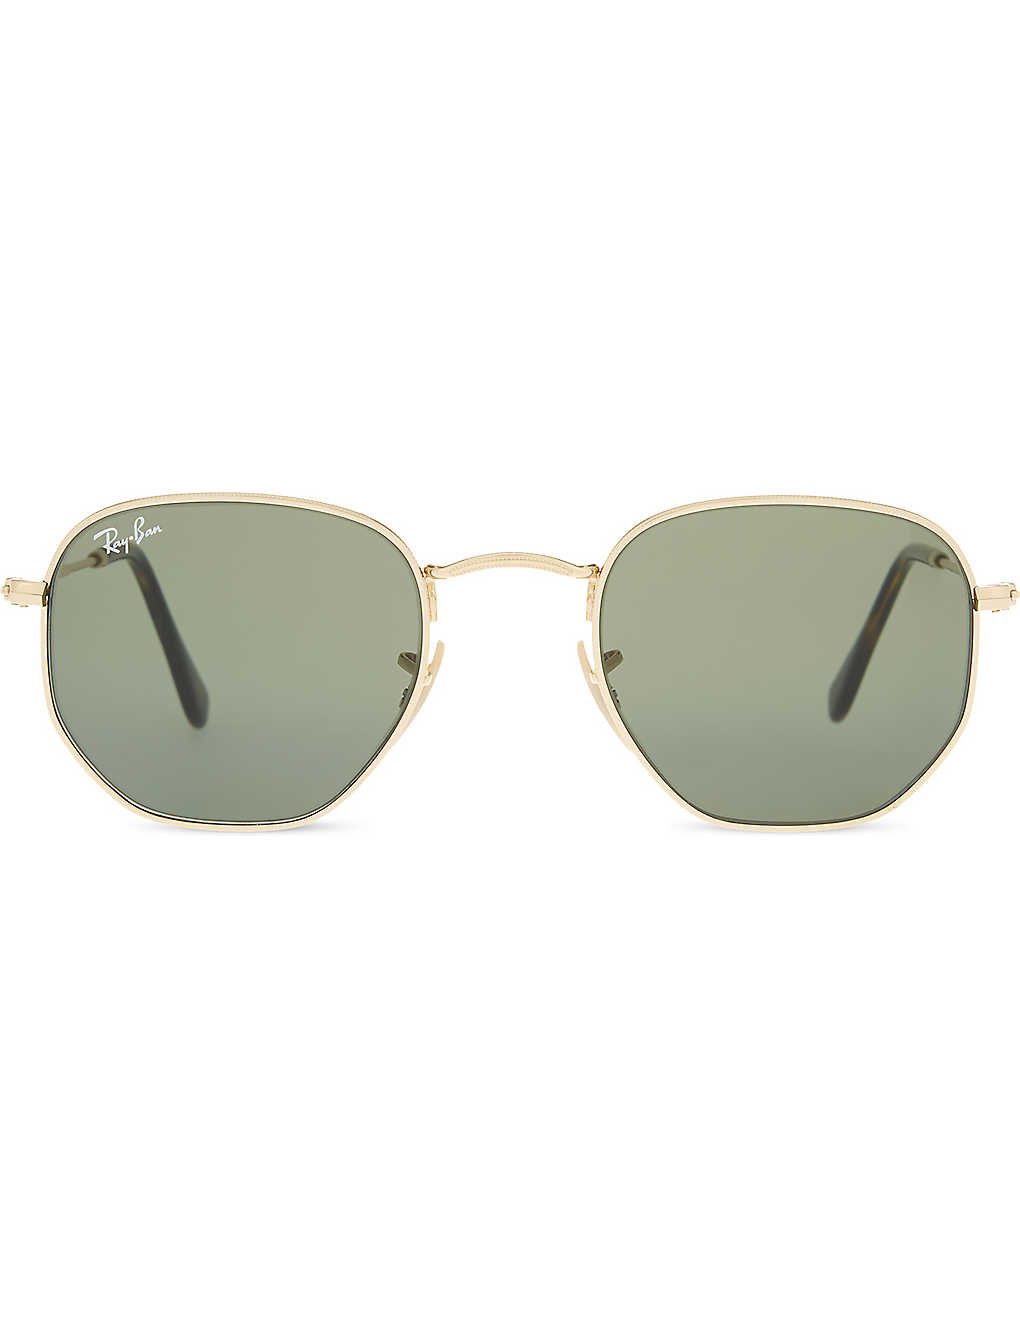 cca5337bab RAY-BAN - Rb3548 metal hexagonal sunglasses